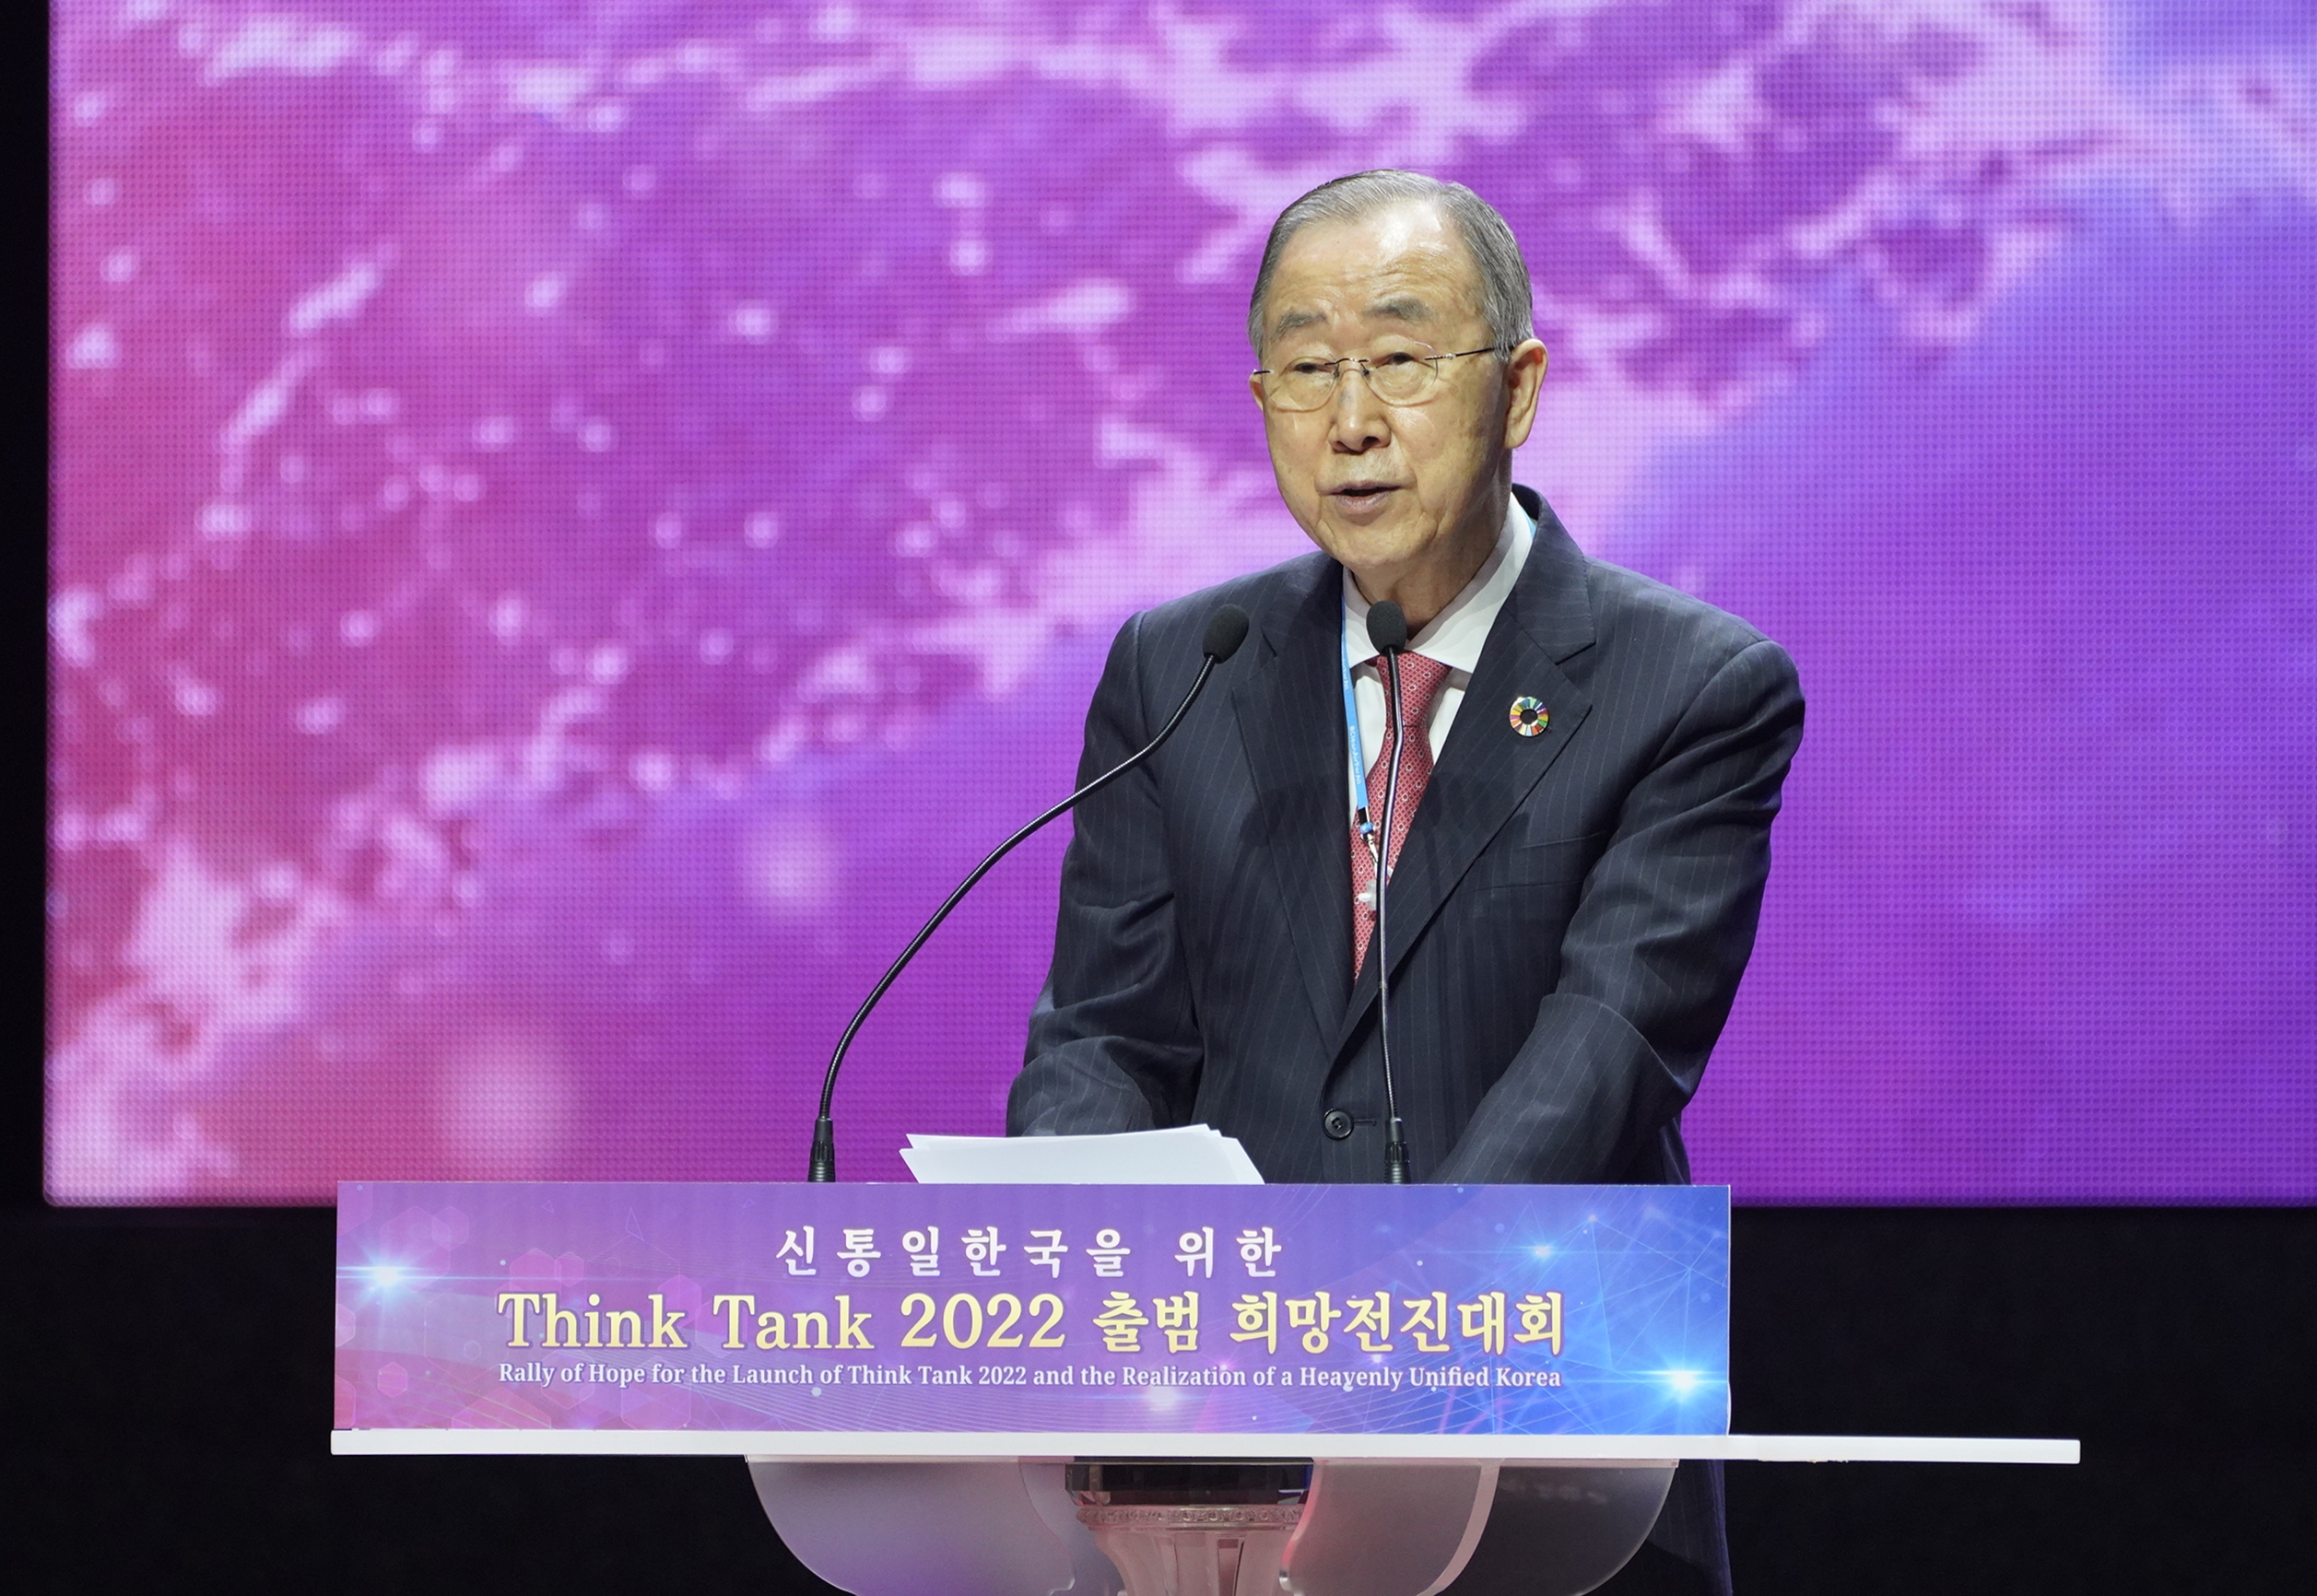 Ban Ki-Moon, former United Nations Secretary-General and Chairman of the new Think Tank 2022 initiative delivering the keynote address.